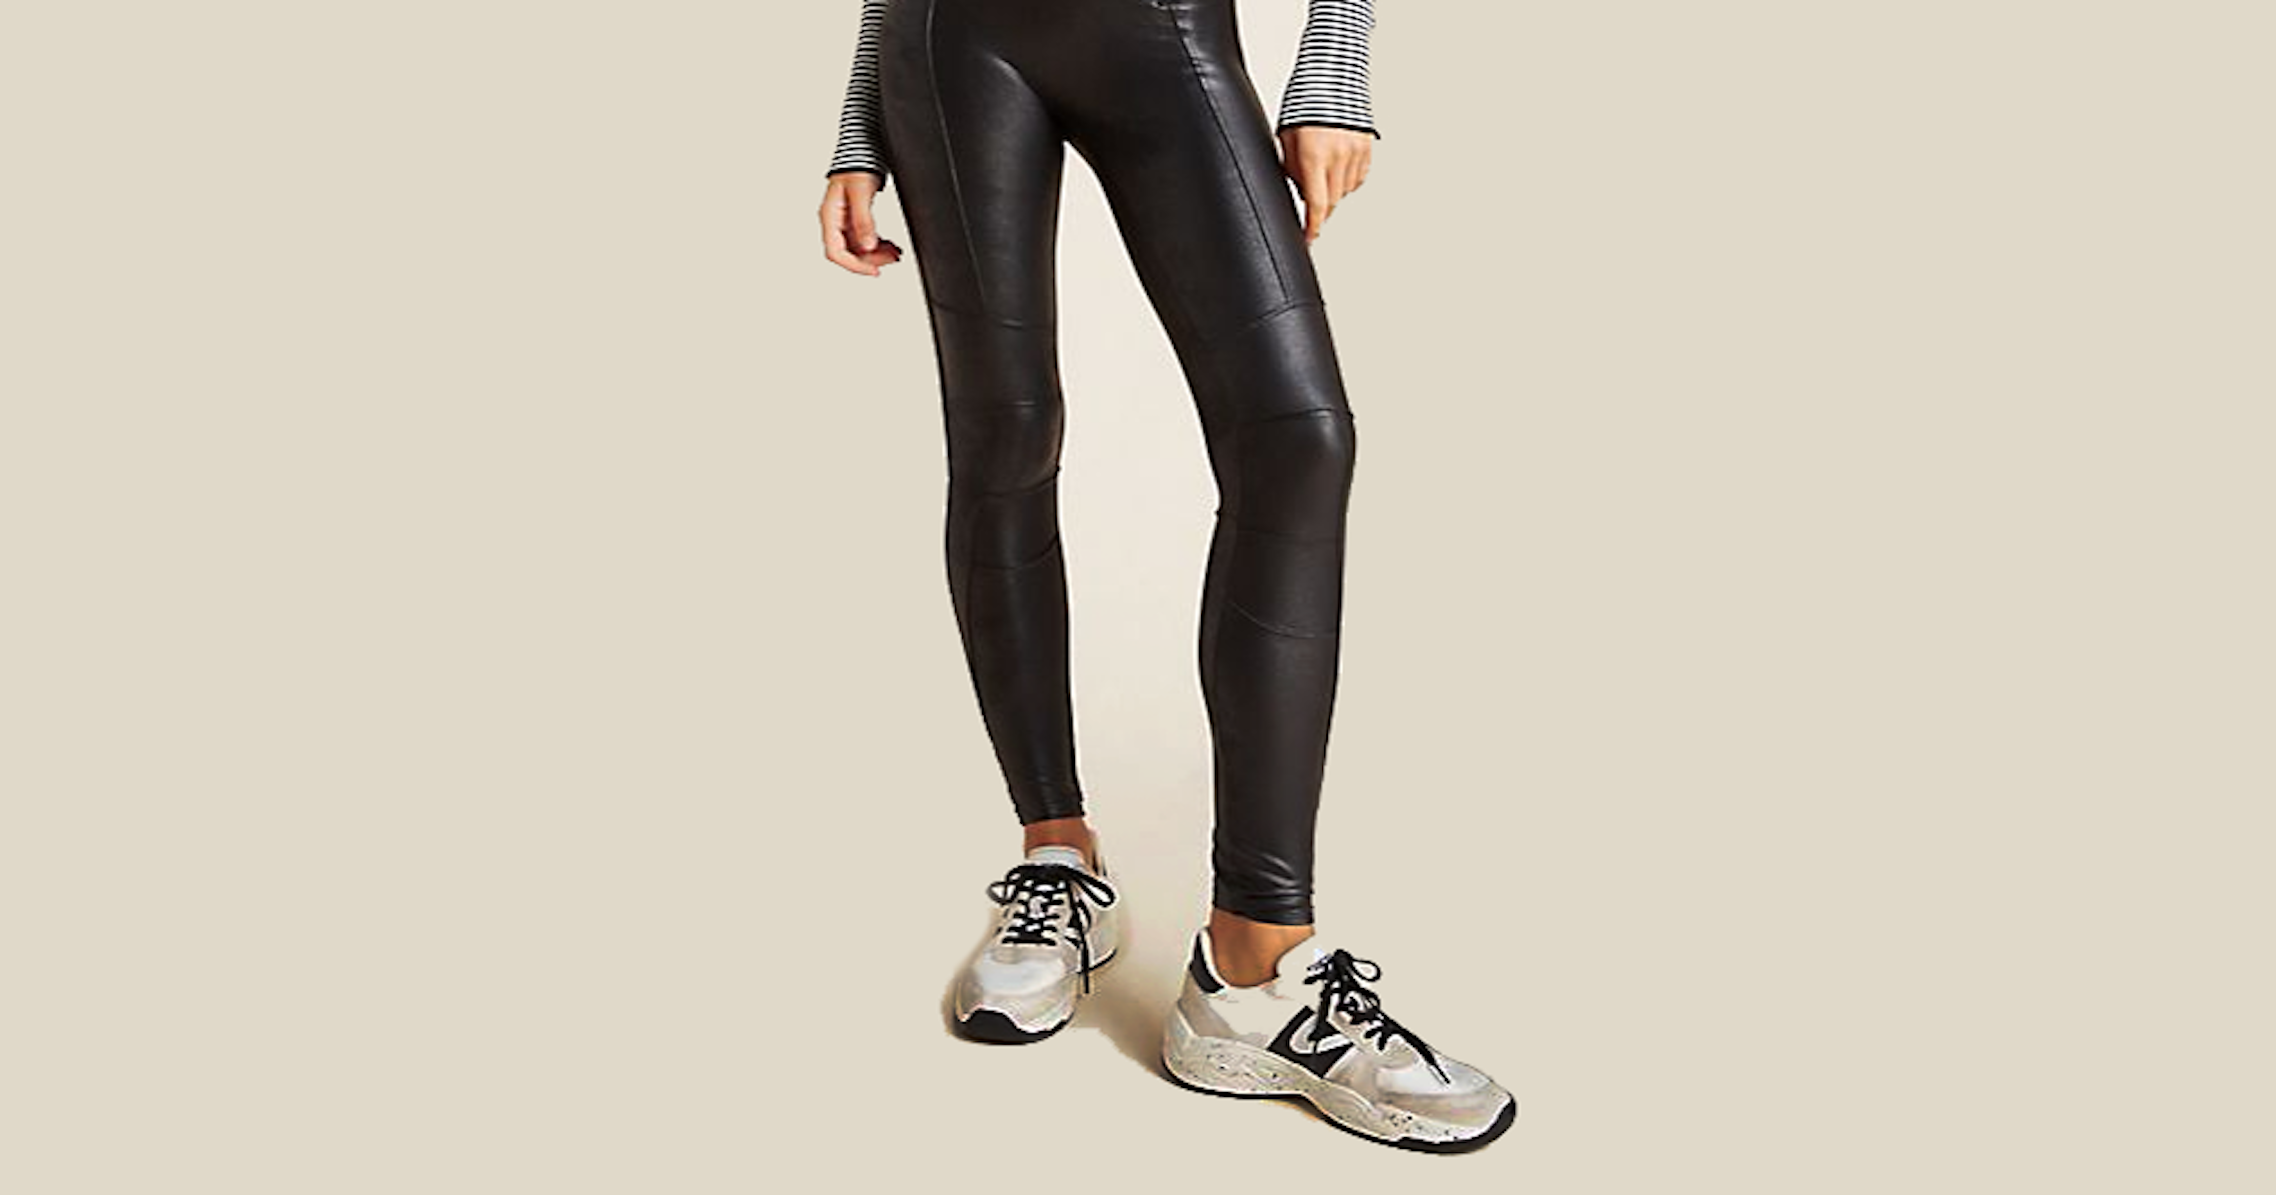 Styling Tips For Black Leather Leggings On A Scale Of Simple To Surprising